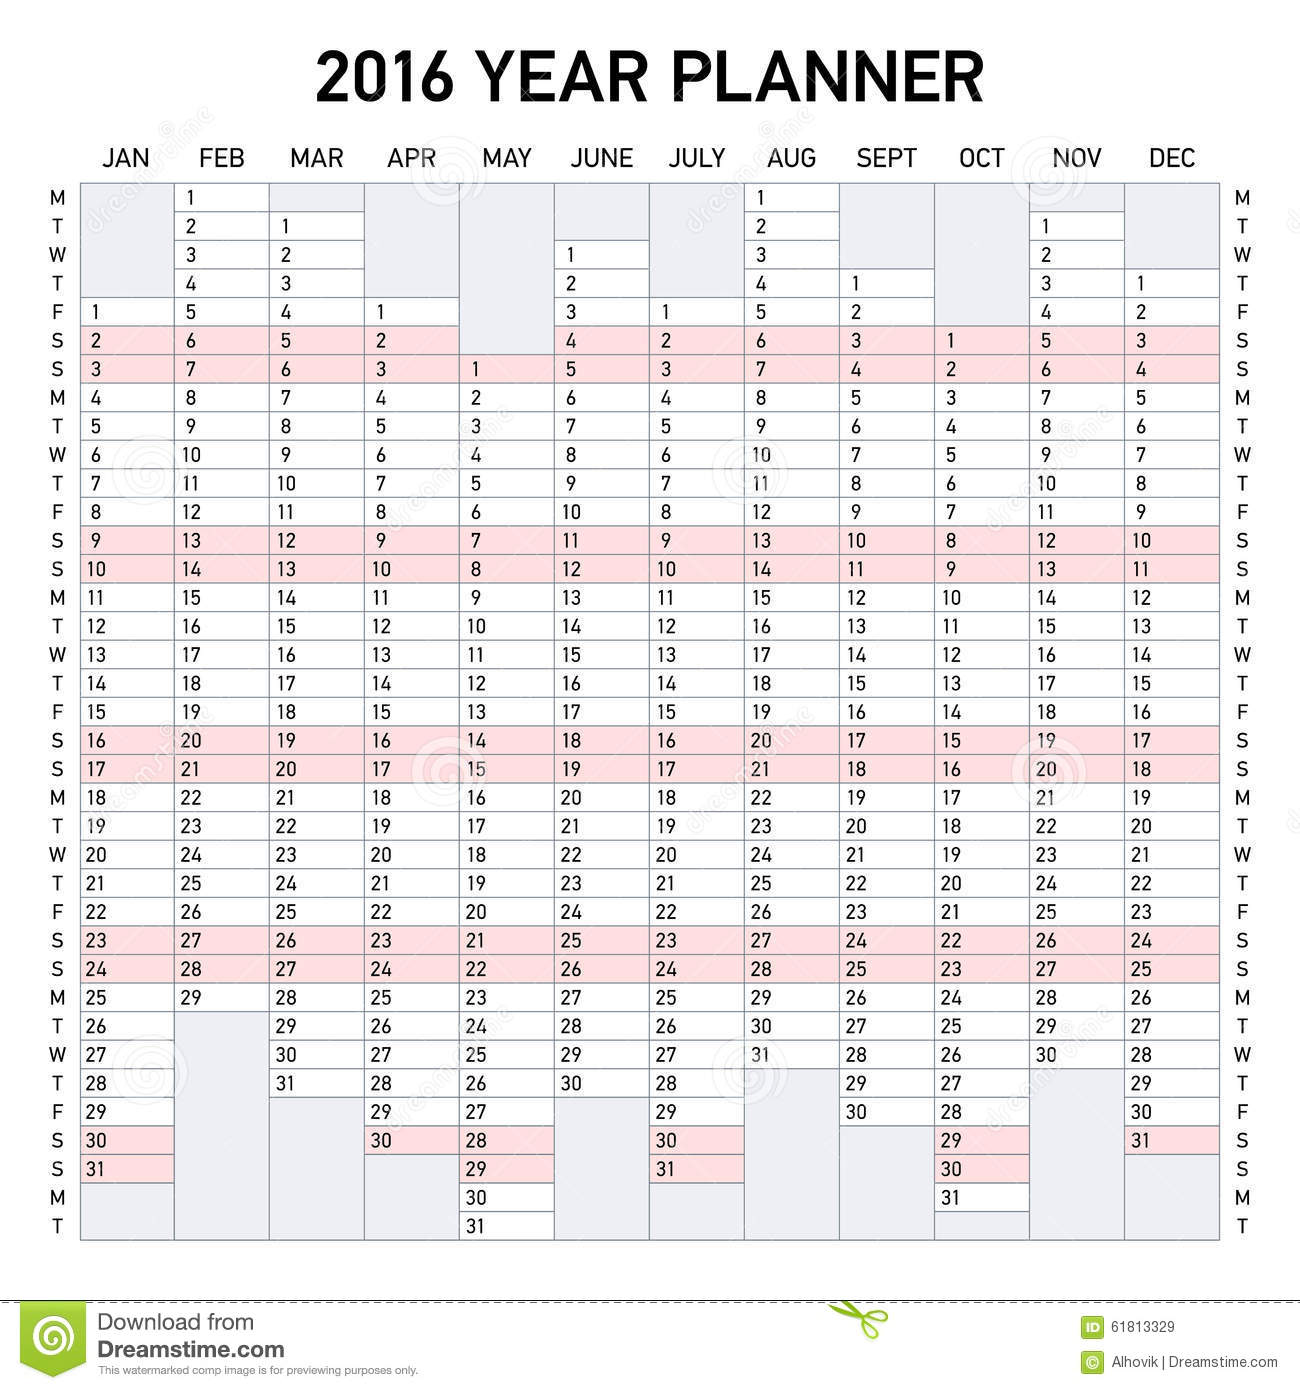 2016 Year Planner Stock Vector - Image: 61813329